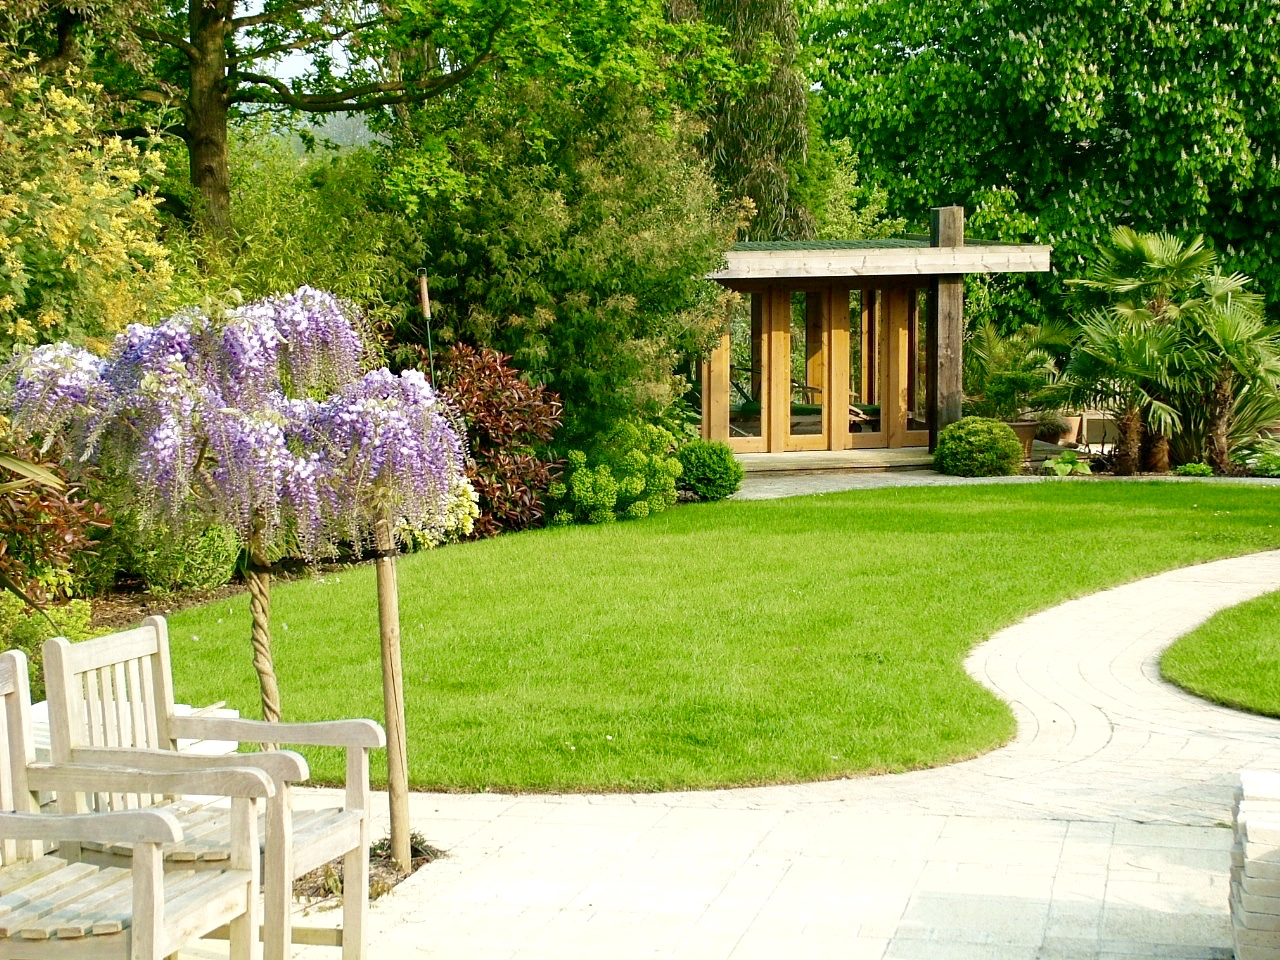 Summer House in Landscaped Garden